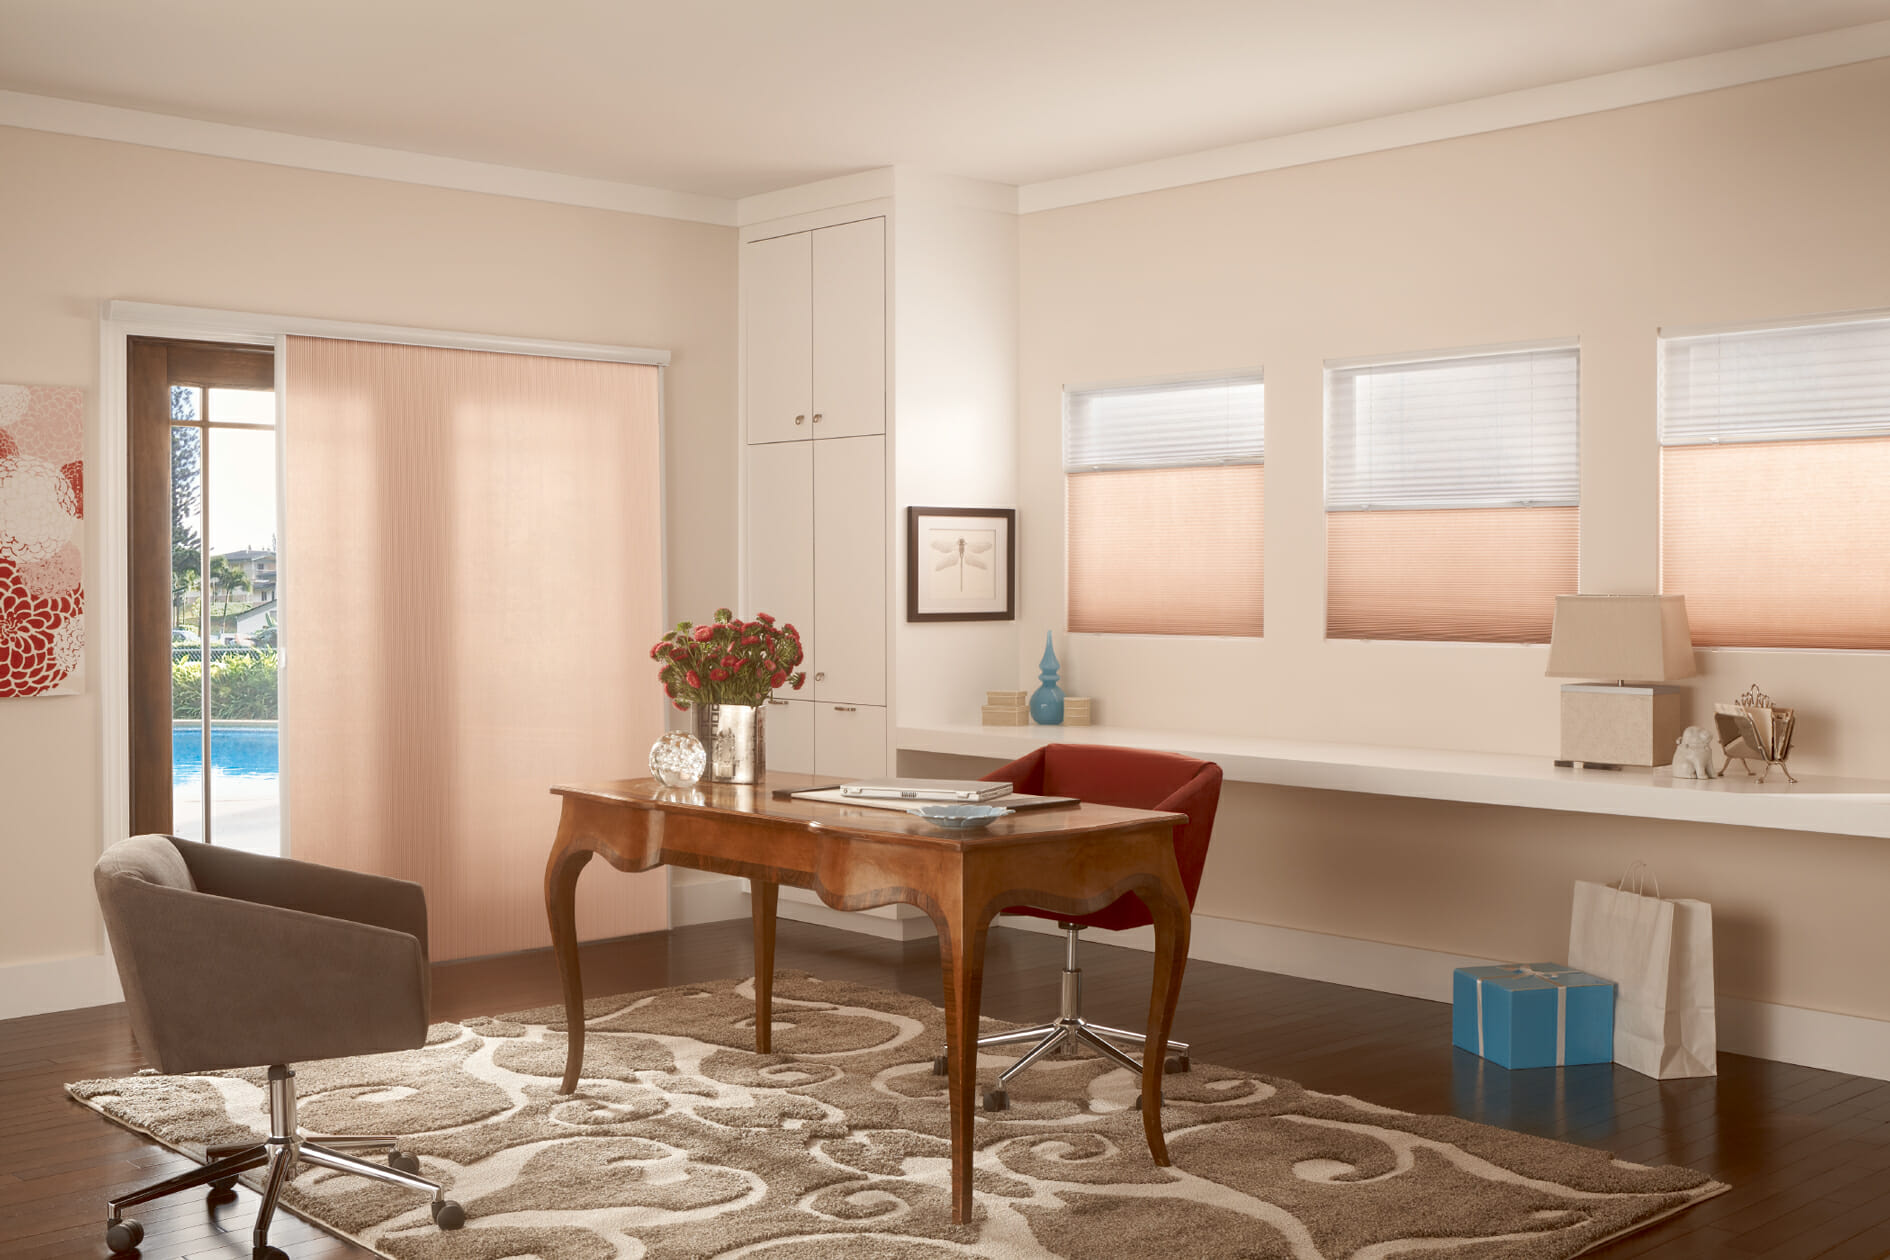 Cellular Shades Allow You To Control The Amount Of Light Or Darkness Want